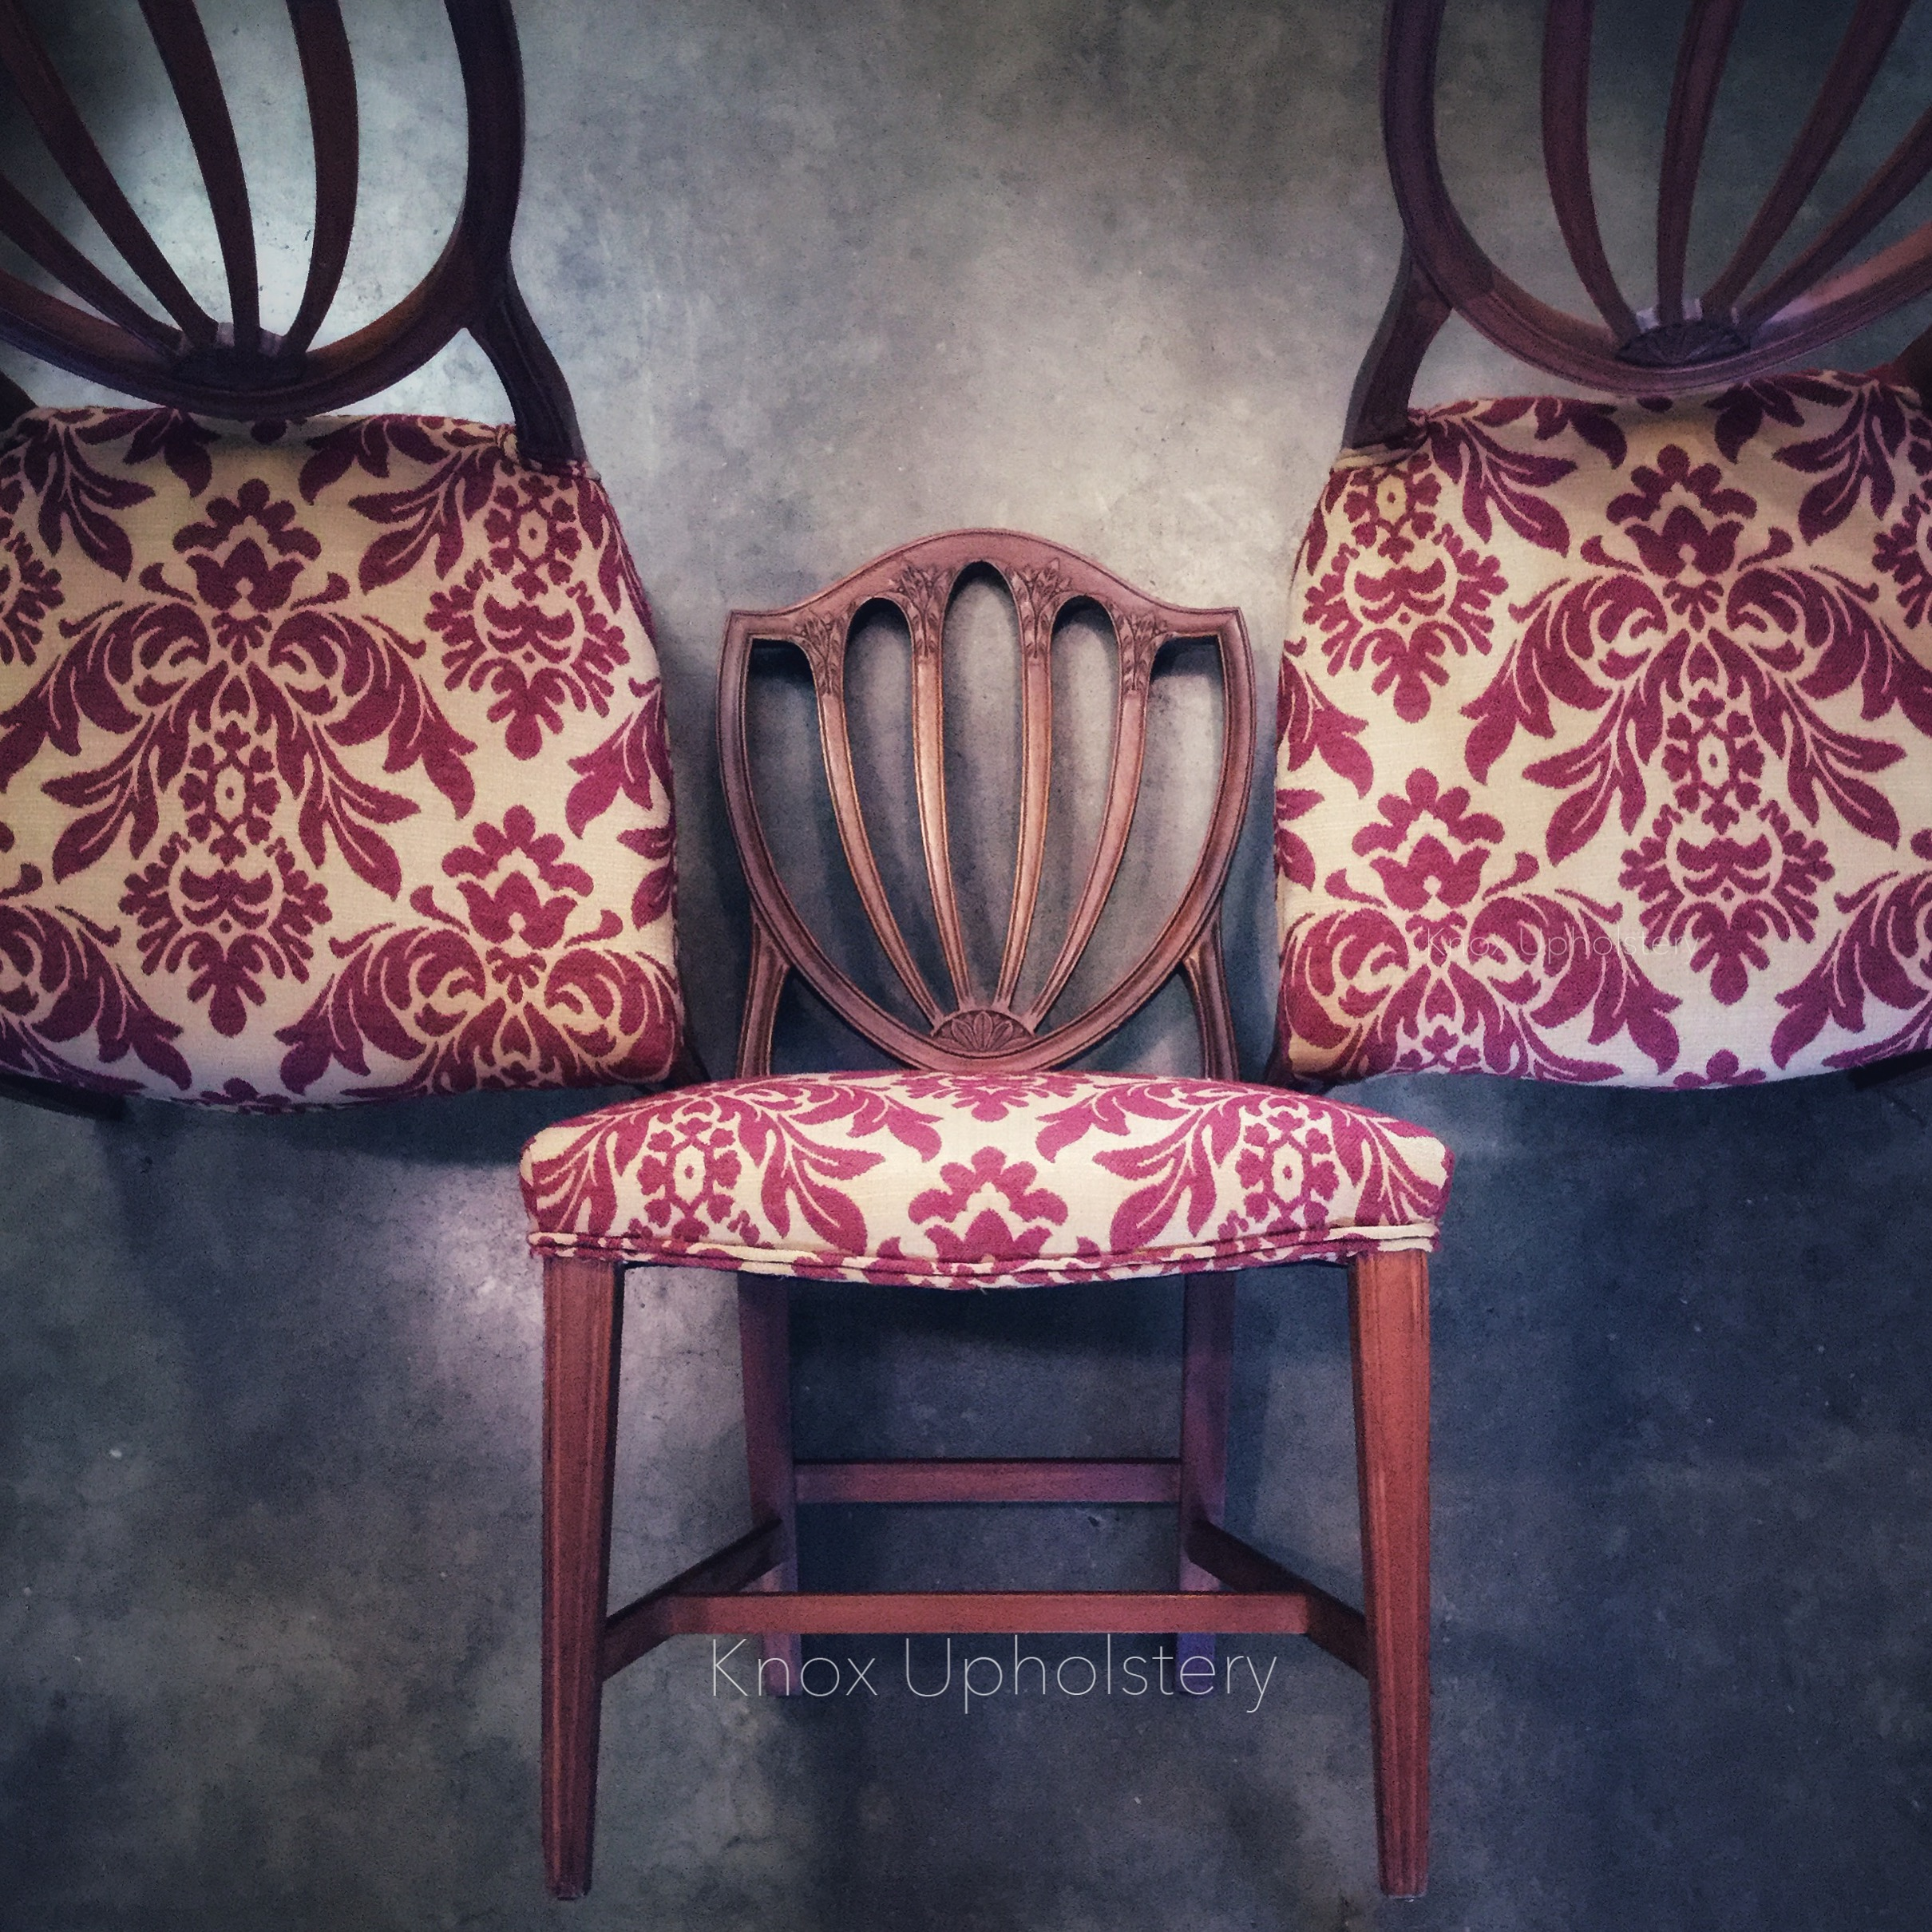 Knox Upholstery Knoxville Tennessee Hepplewhite Dining Room Chairs